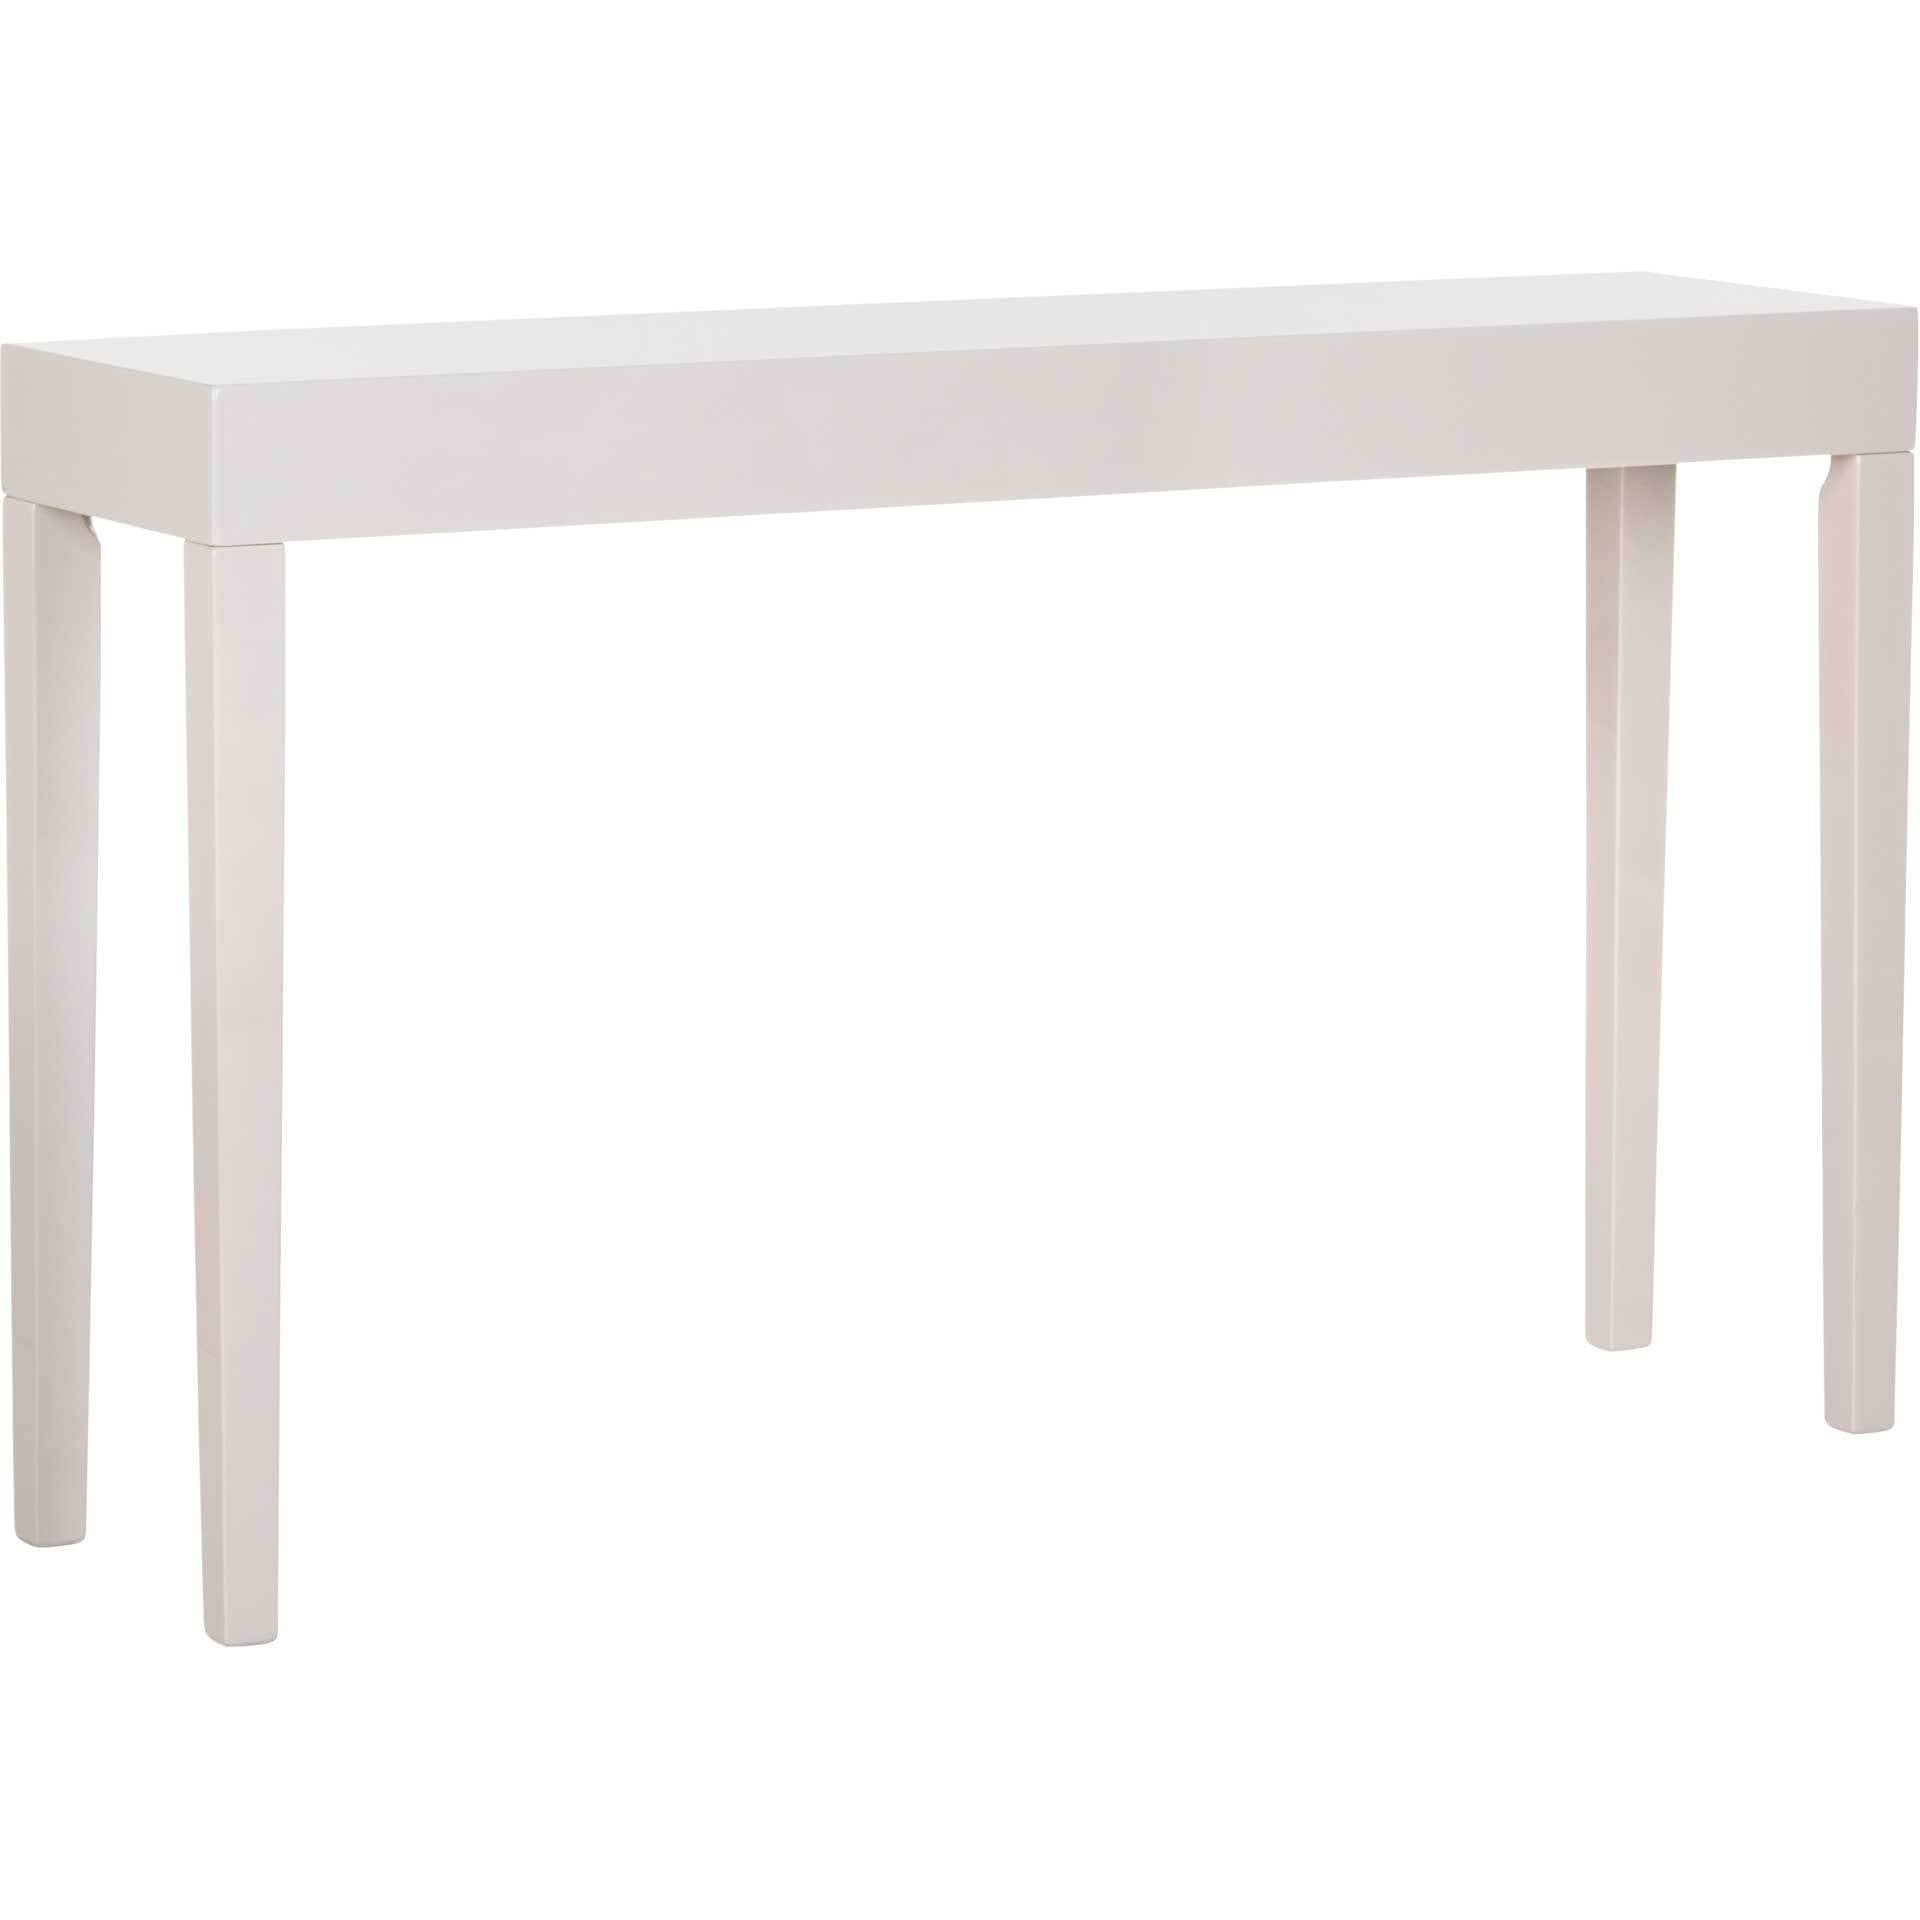 Kasey Lacquer Console Table Gray